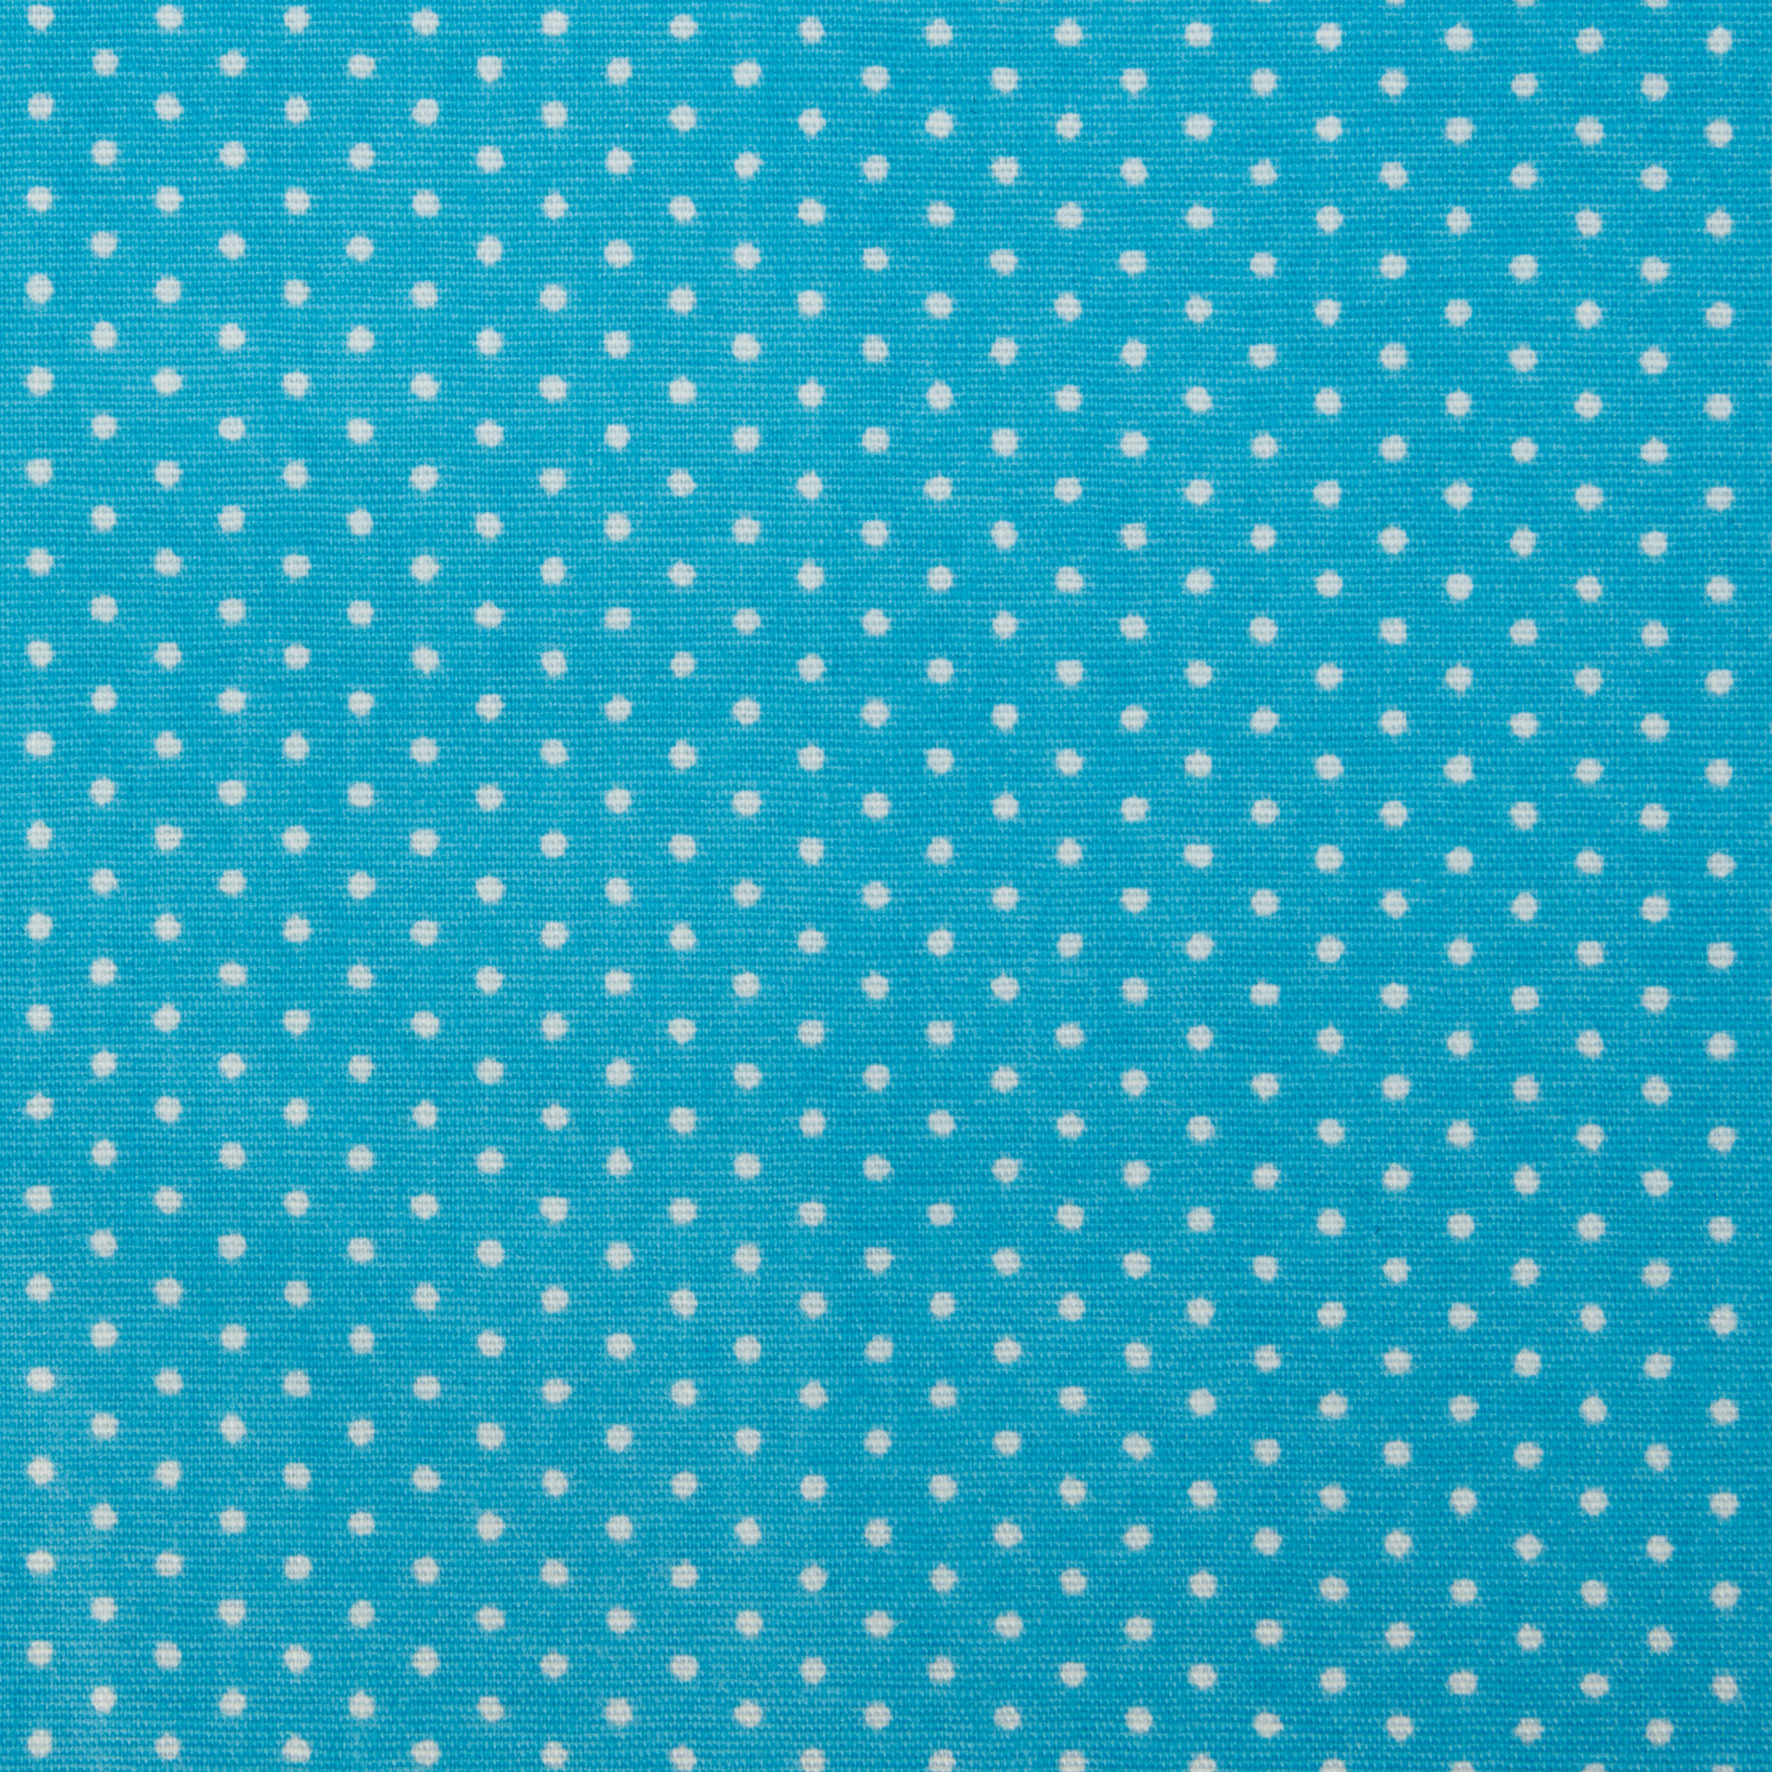 Sky Blue with Polka Dots